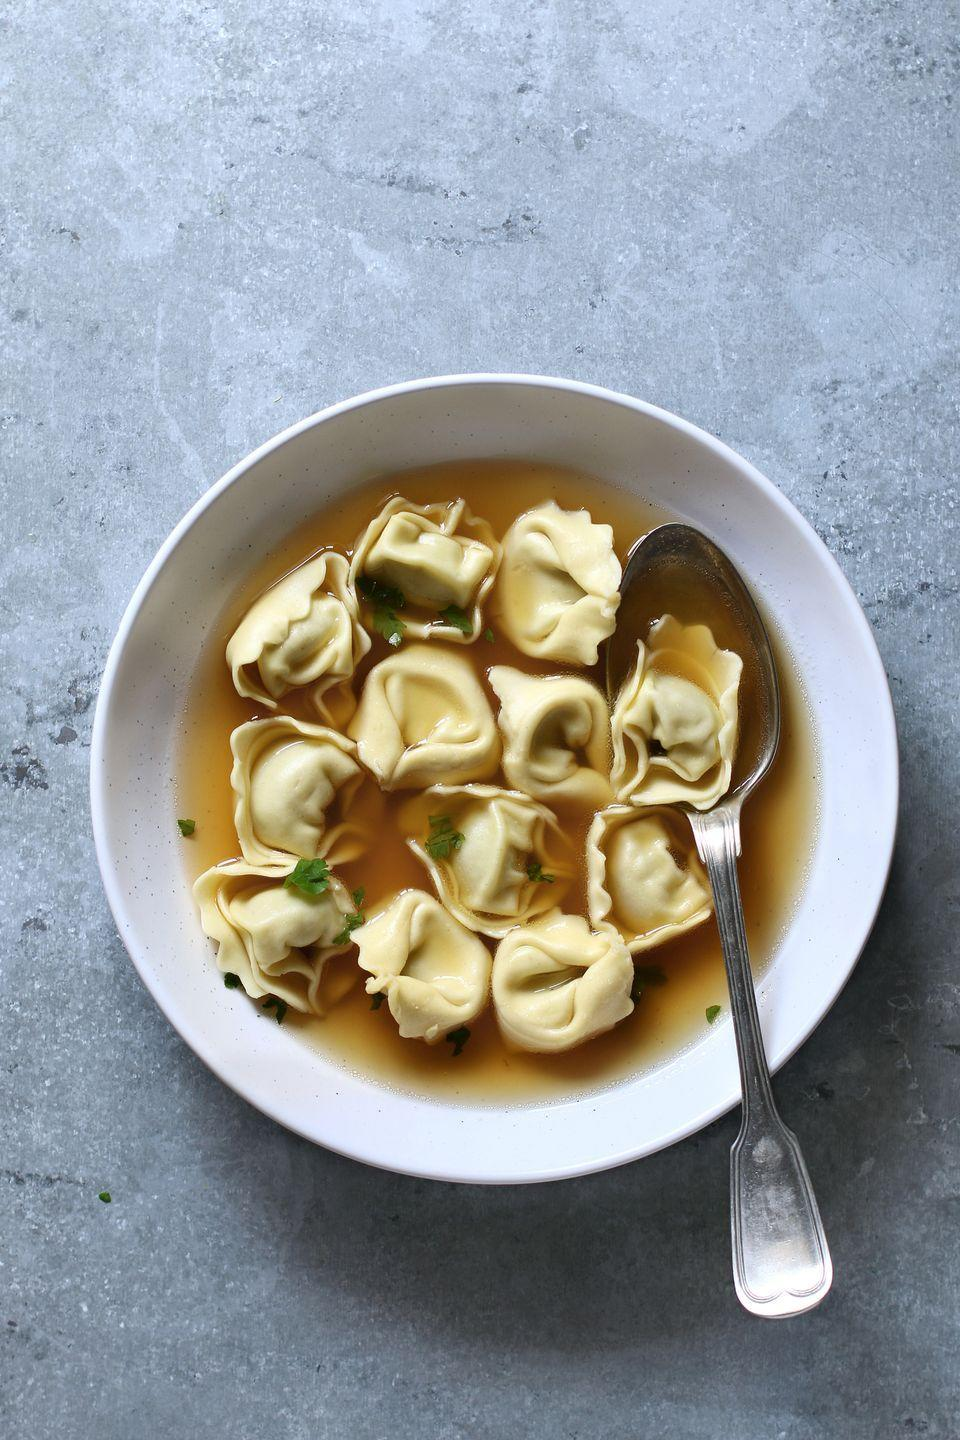 """<p>Traditionally, <a href=""""https://www.delish.com/uk/cooking/recipes/a28828808/bolognese-tortellini-bake-recipe/"""" rel=""""nofollow noopener"""" target=""""_blank"""" data-ylk=""""slk:tortellini"""" class=""""link rapid-noclick-resp"""">tortellini</a> are stuffed with a mix of meat then served doused in butter, or in a broth.</p>"""